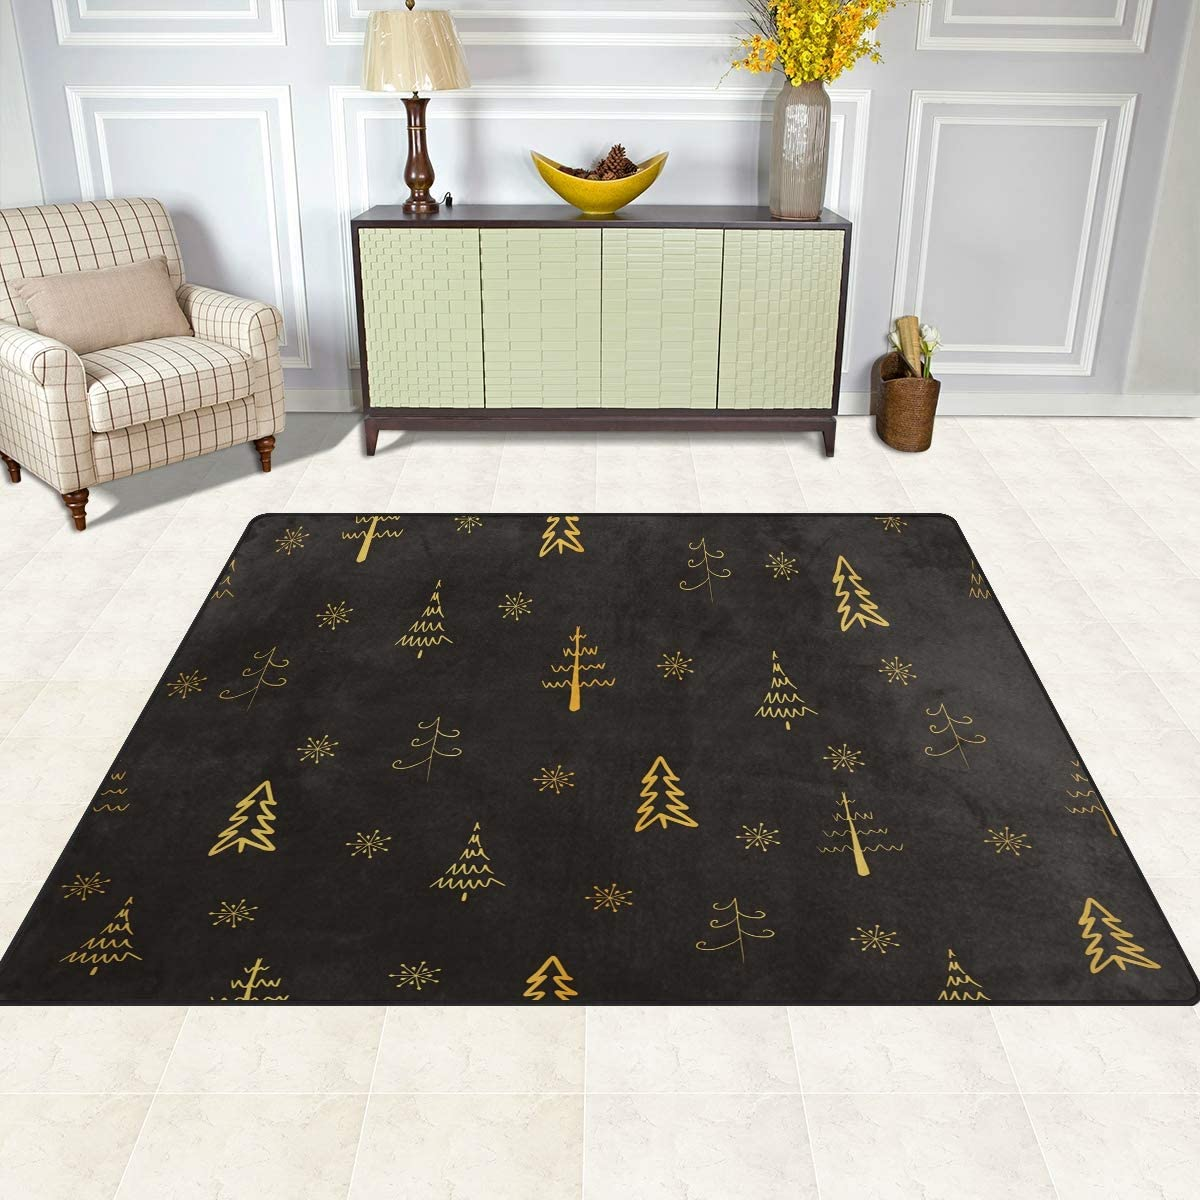 Amazon Com Christmas Area Rugs 5x7 Area Rugs For Living Room Bedroom Large Area Rugs Christmas Gold Tree And Snowflake Kitchen Dining